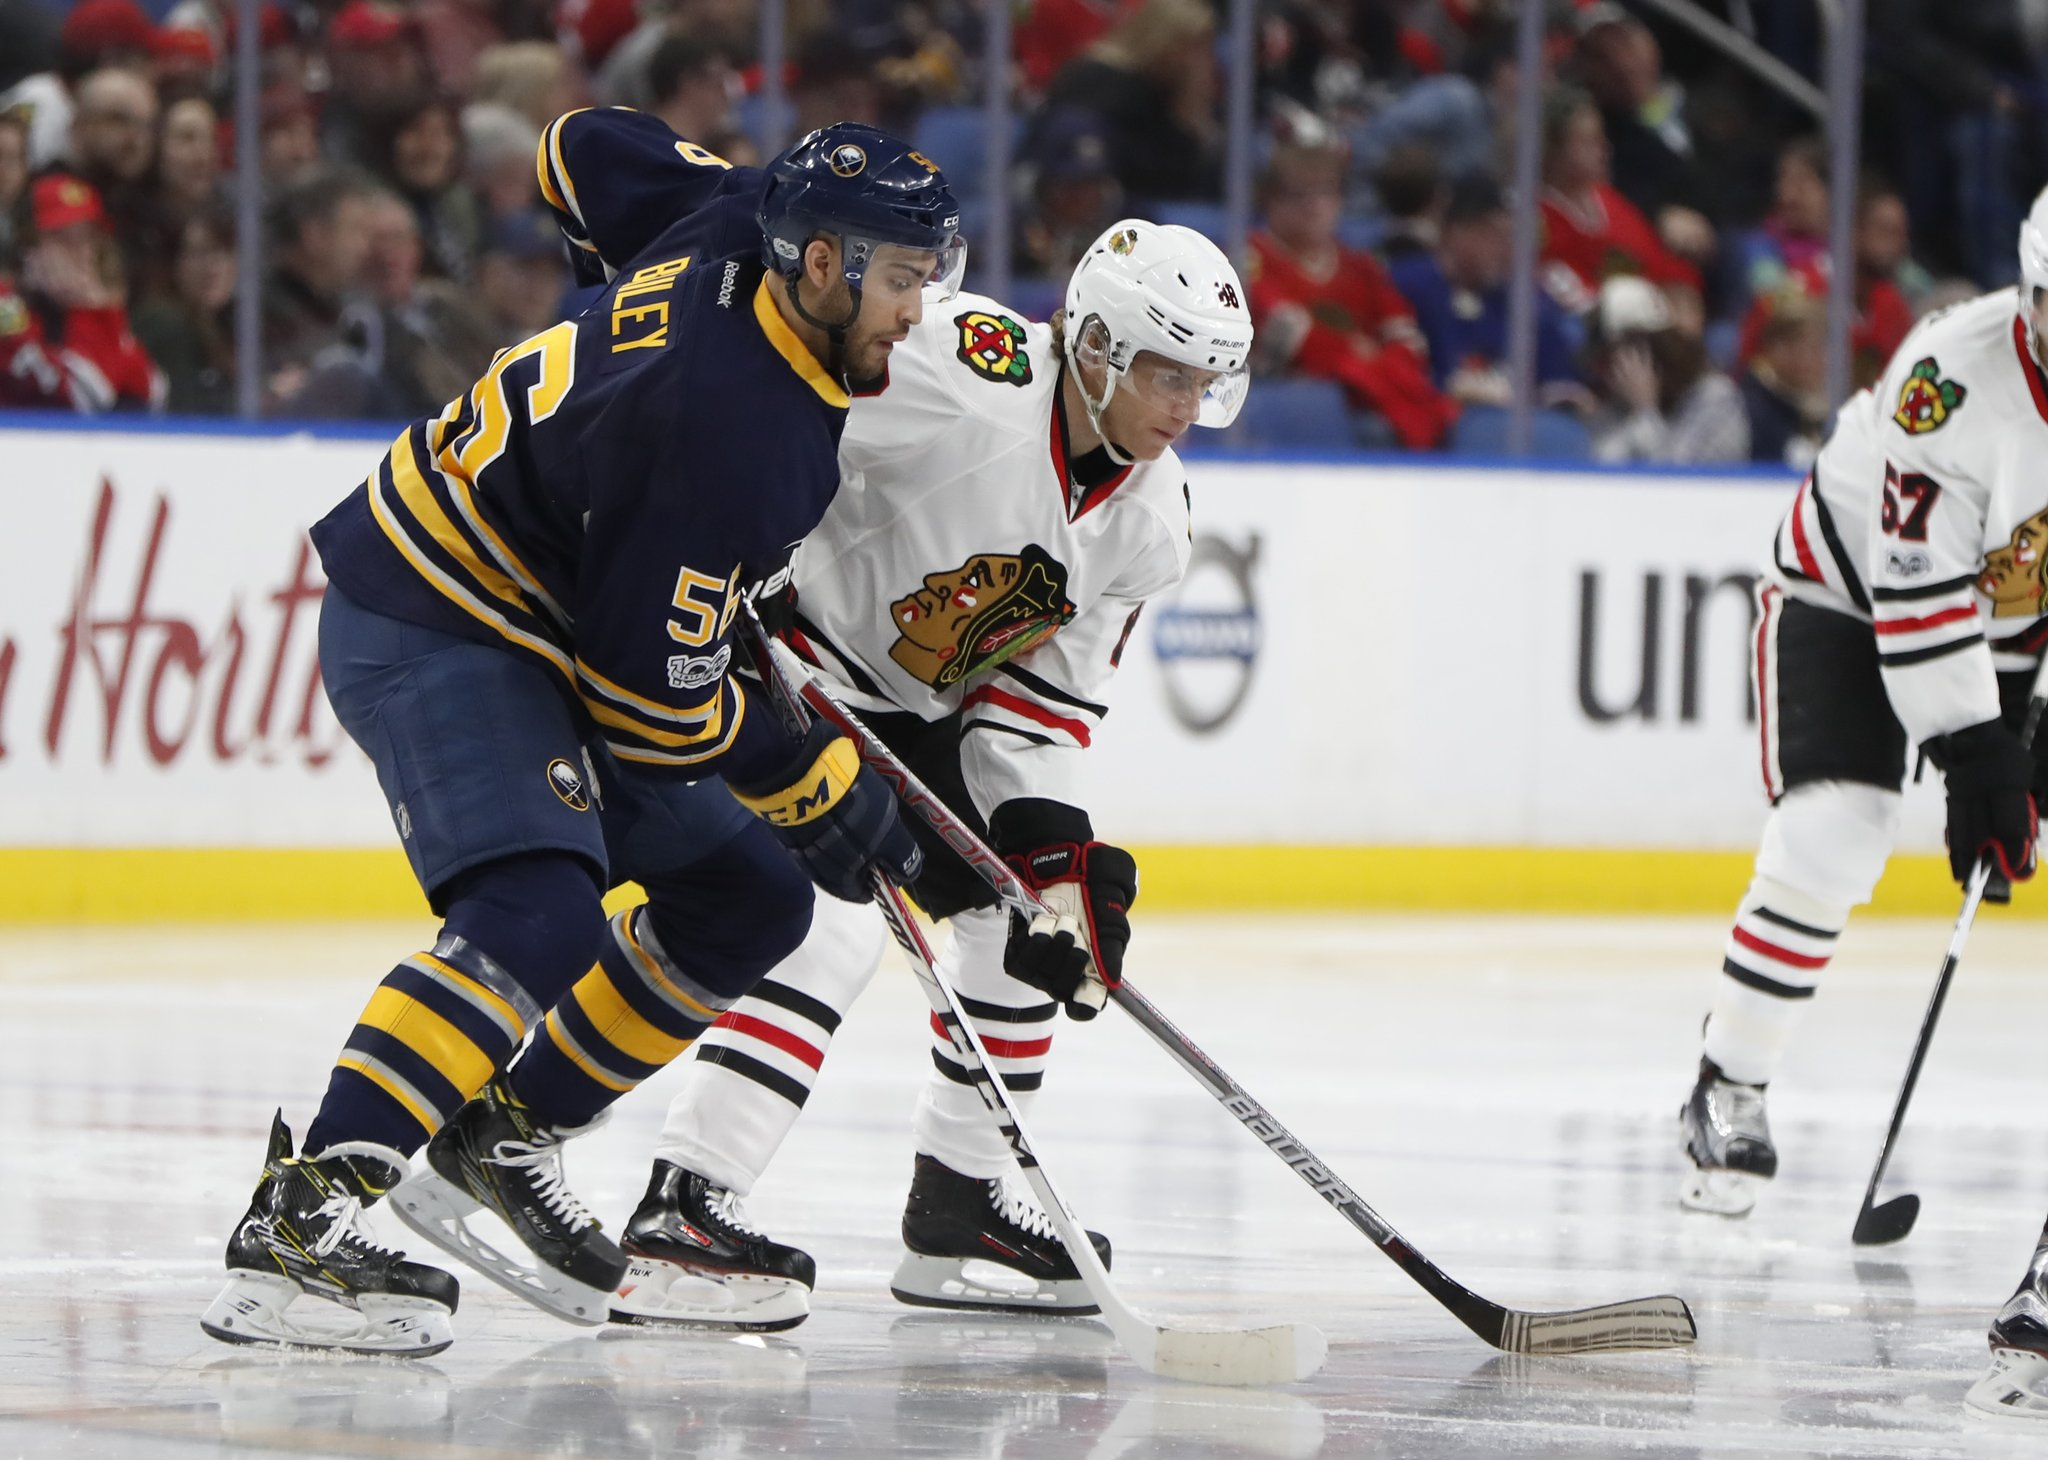 Justin Bailey and the Sabres won't like the highlights of the loss to Patrick Kane and the Blackhawks. (Harry Scull Jr./Buffalo News)